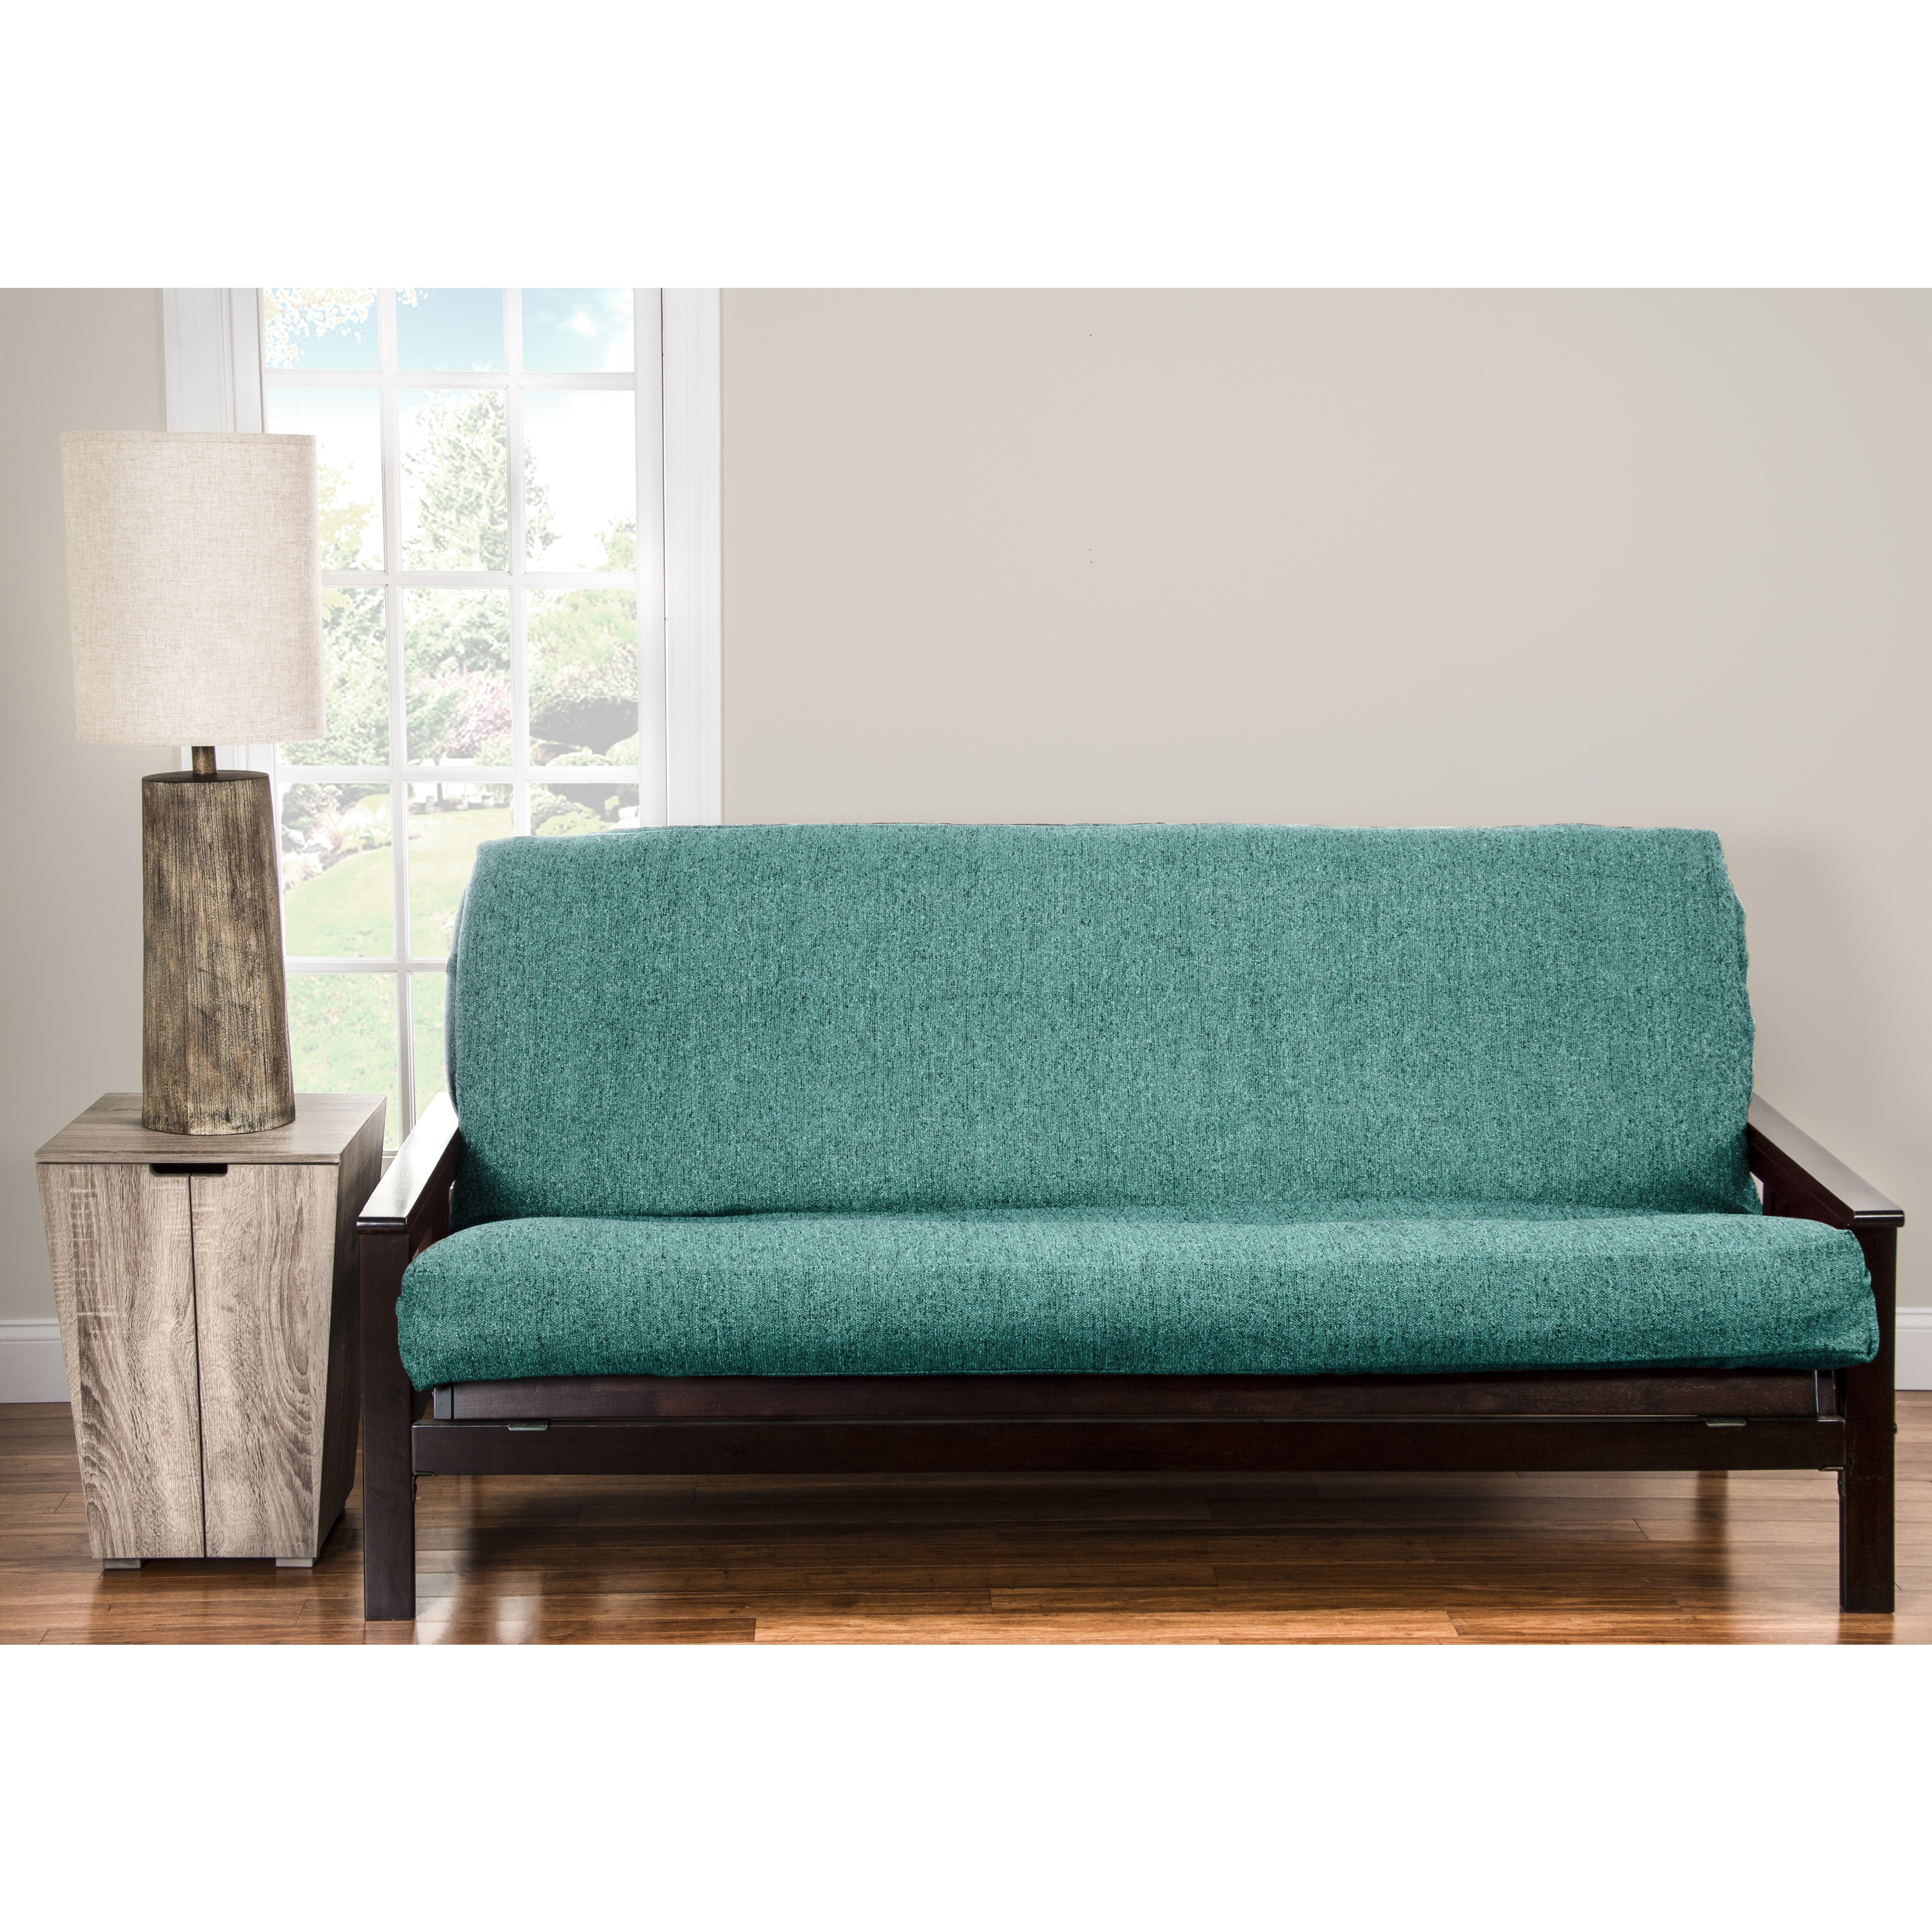 Pologear Belmont Turquoise Homespun Futon Cover Turqoise On Free Shipping Today Com 14513611